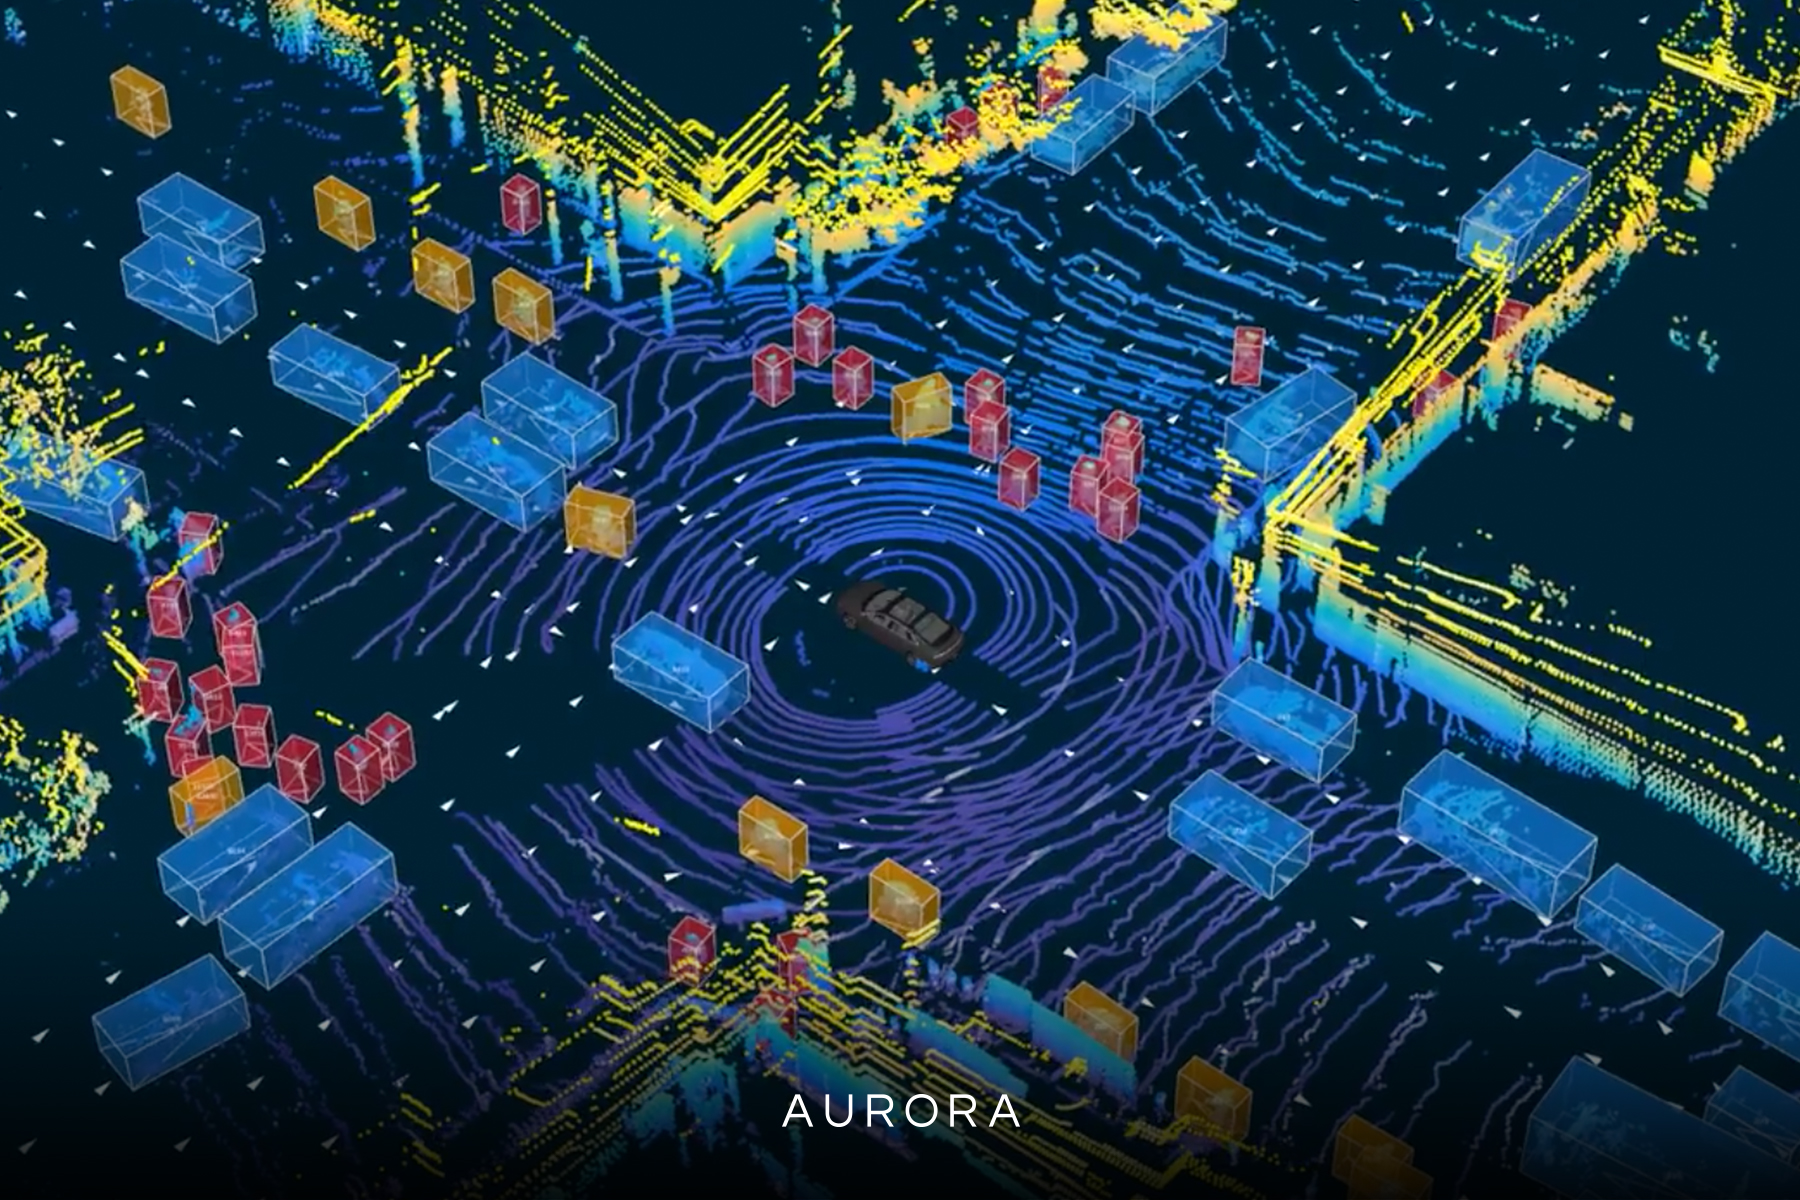 Aurora cofounder and CEO Chris Urmson on the corporate's new investor, Amazon, and phenomenal more